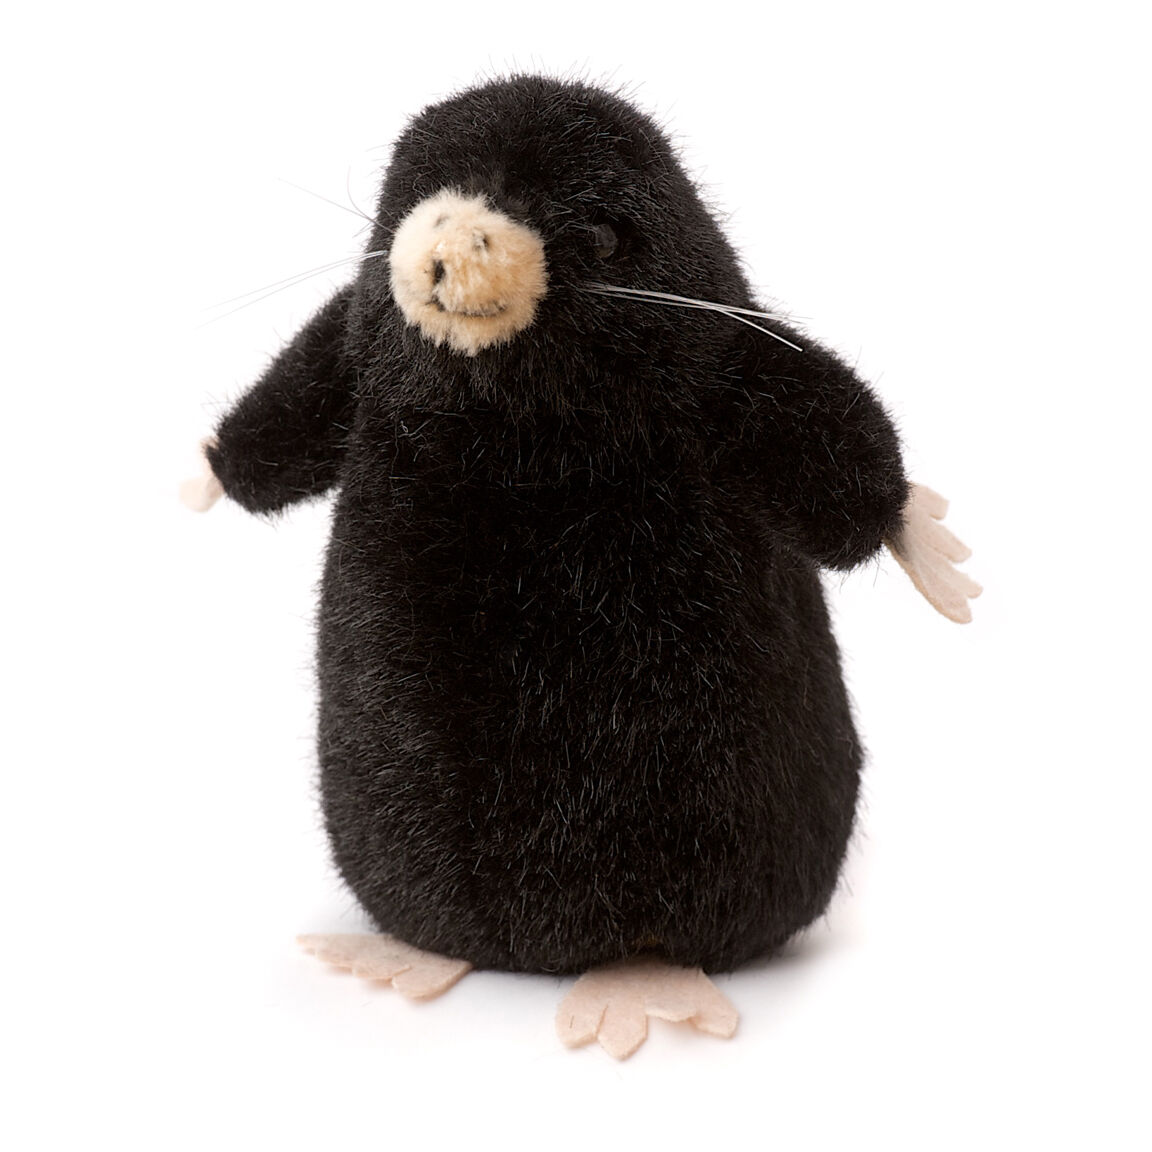 Mole - standing - collectable soft toy by Kosen   Kösen - 4410